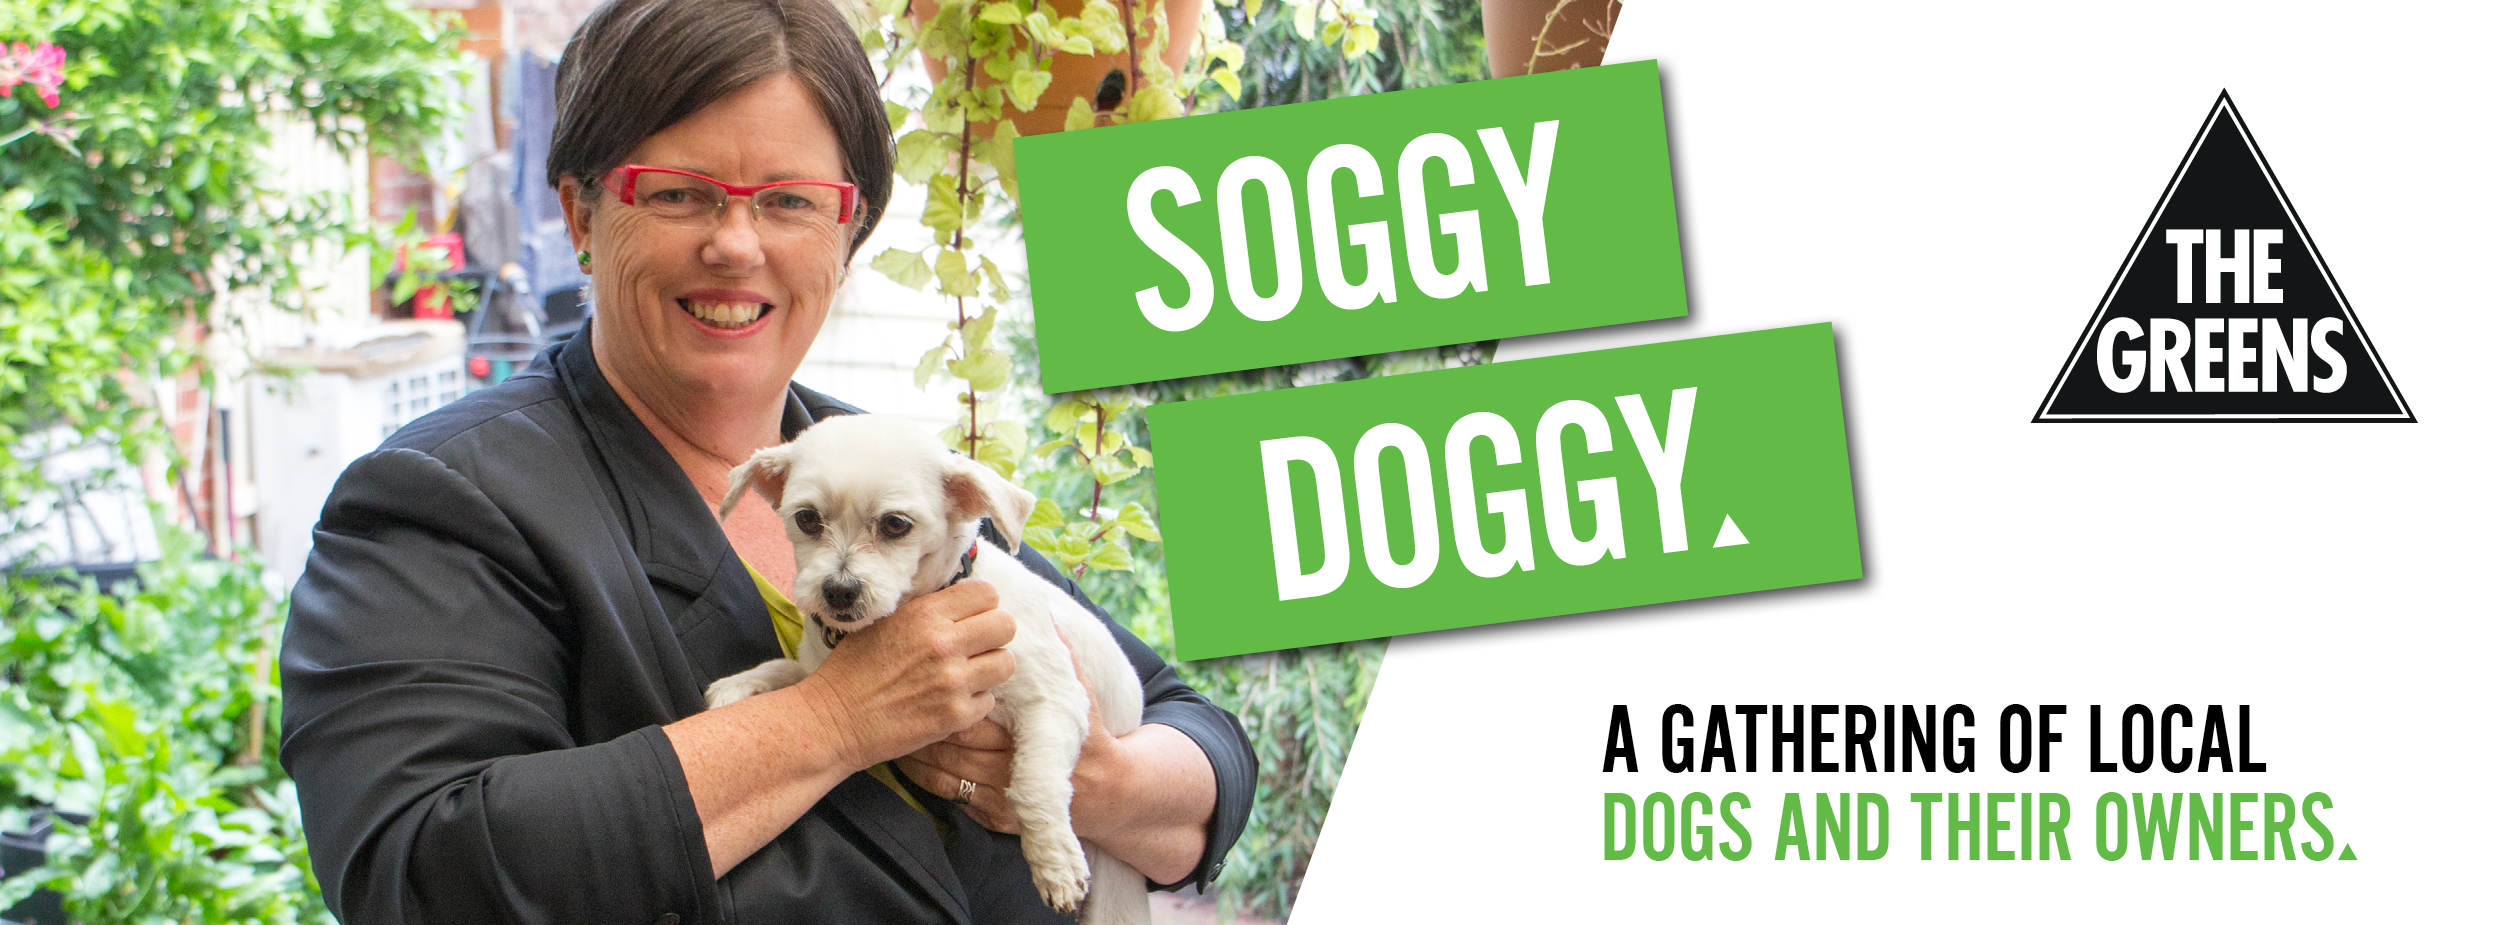 140729_Soggy_Doggy_FB_Event_Cover.png